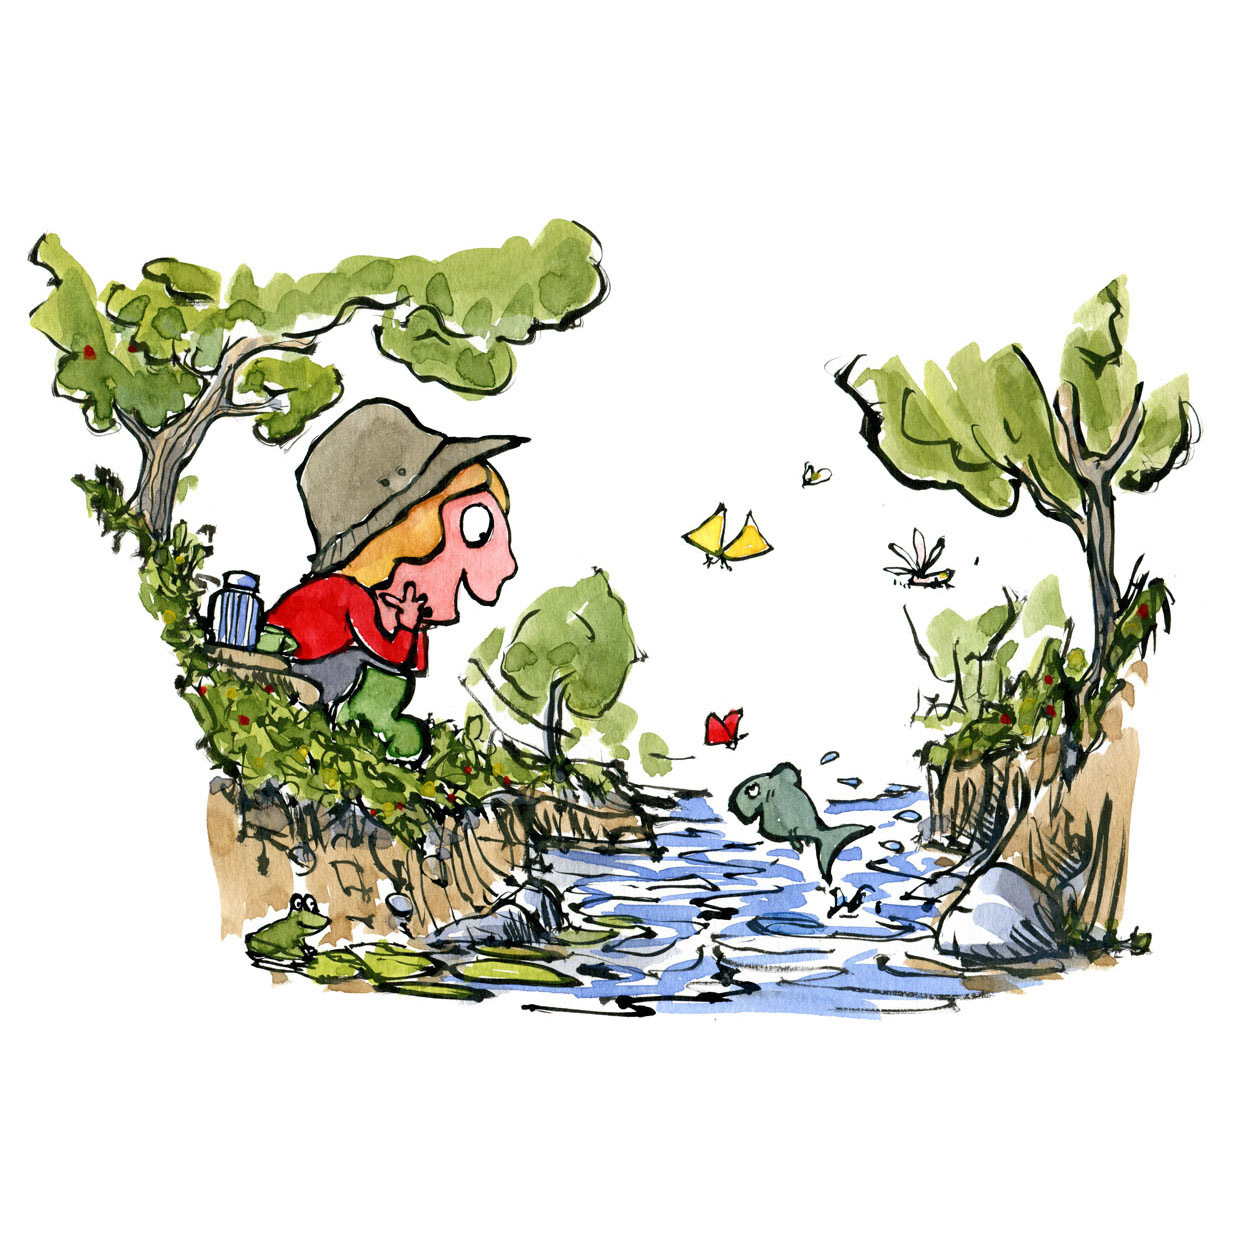 illustration of little girl sitting by the water and looking happy on a fish jumping. illustration by Frits Ahlefeldt